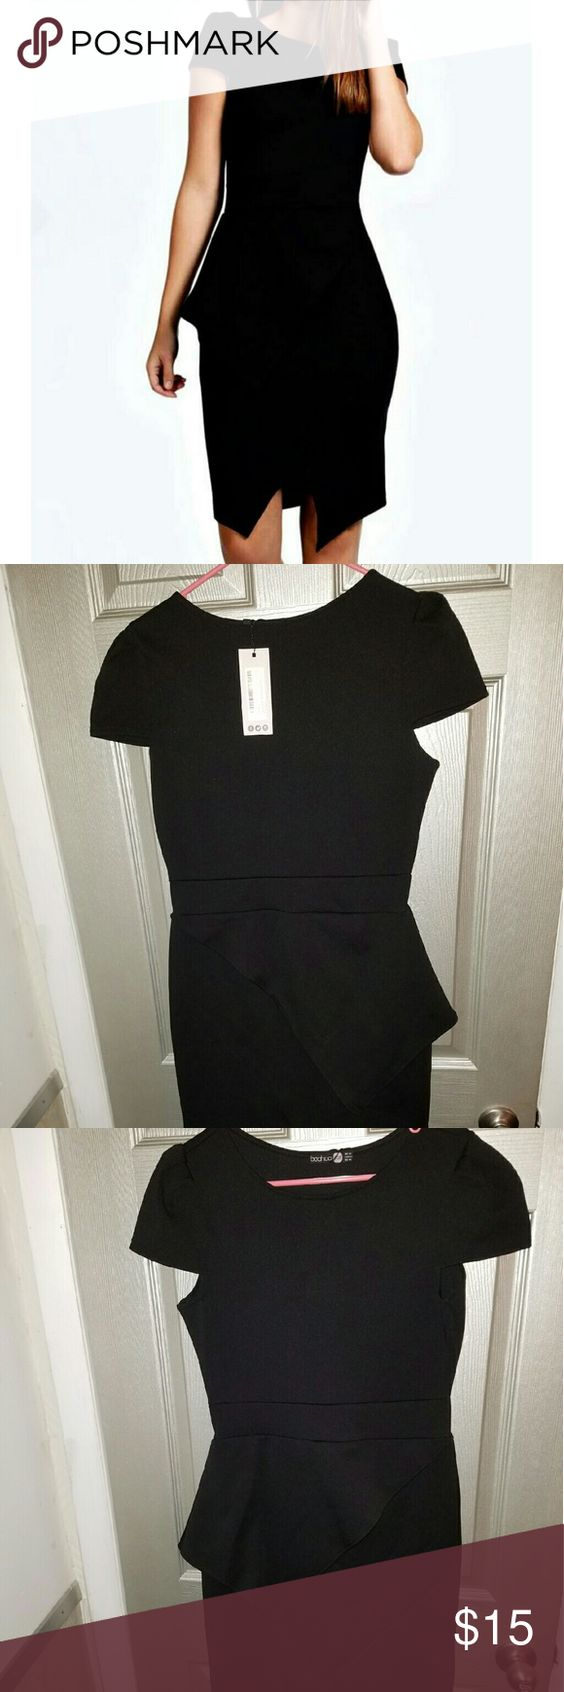 Boohoo Wrap Body-Con Dress Little Black DRESS Great for an evening out or for work Never Worn Size US10 UK14 EUR42 Boohoo Dresses Midi